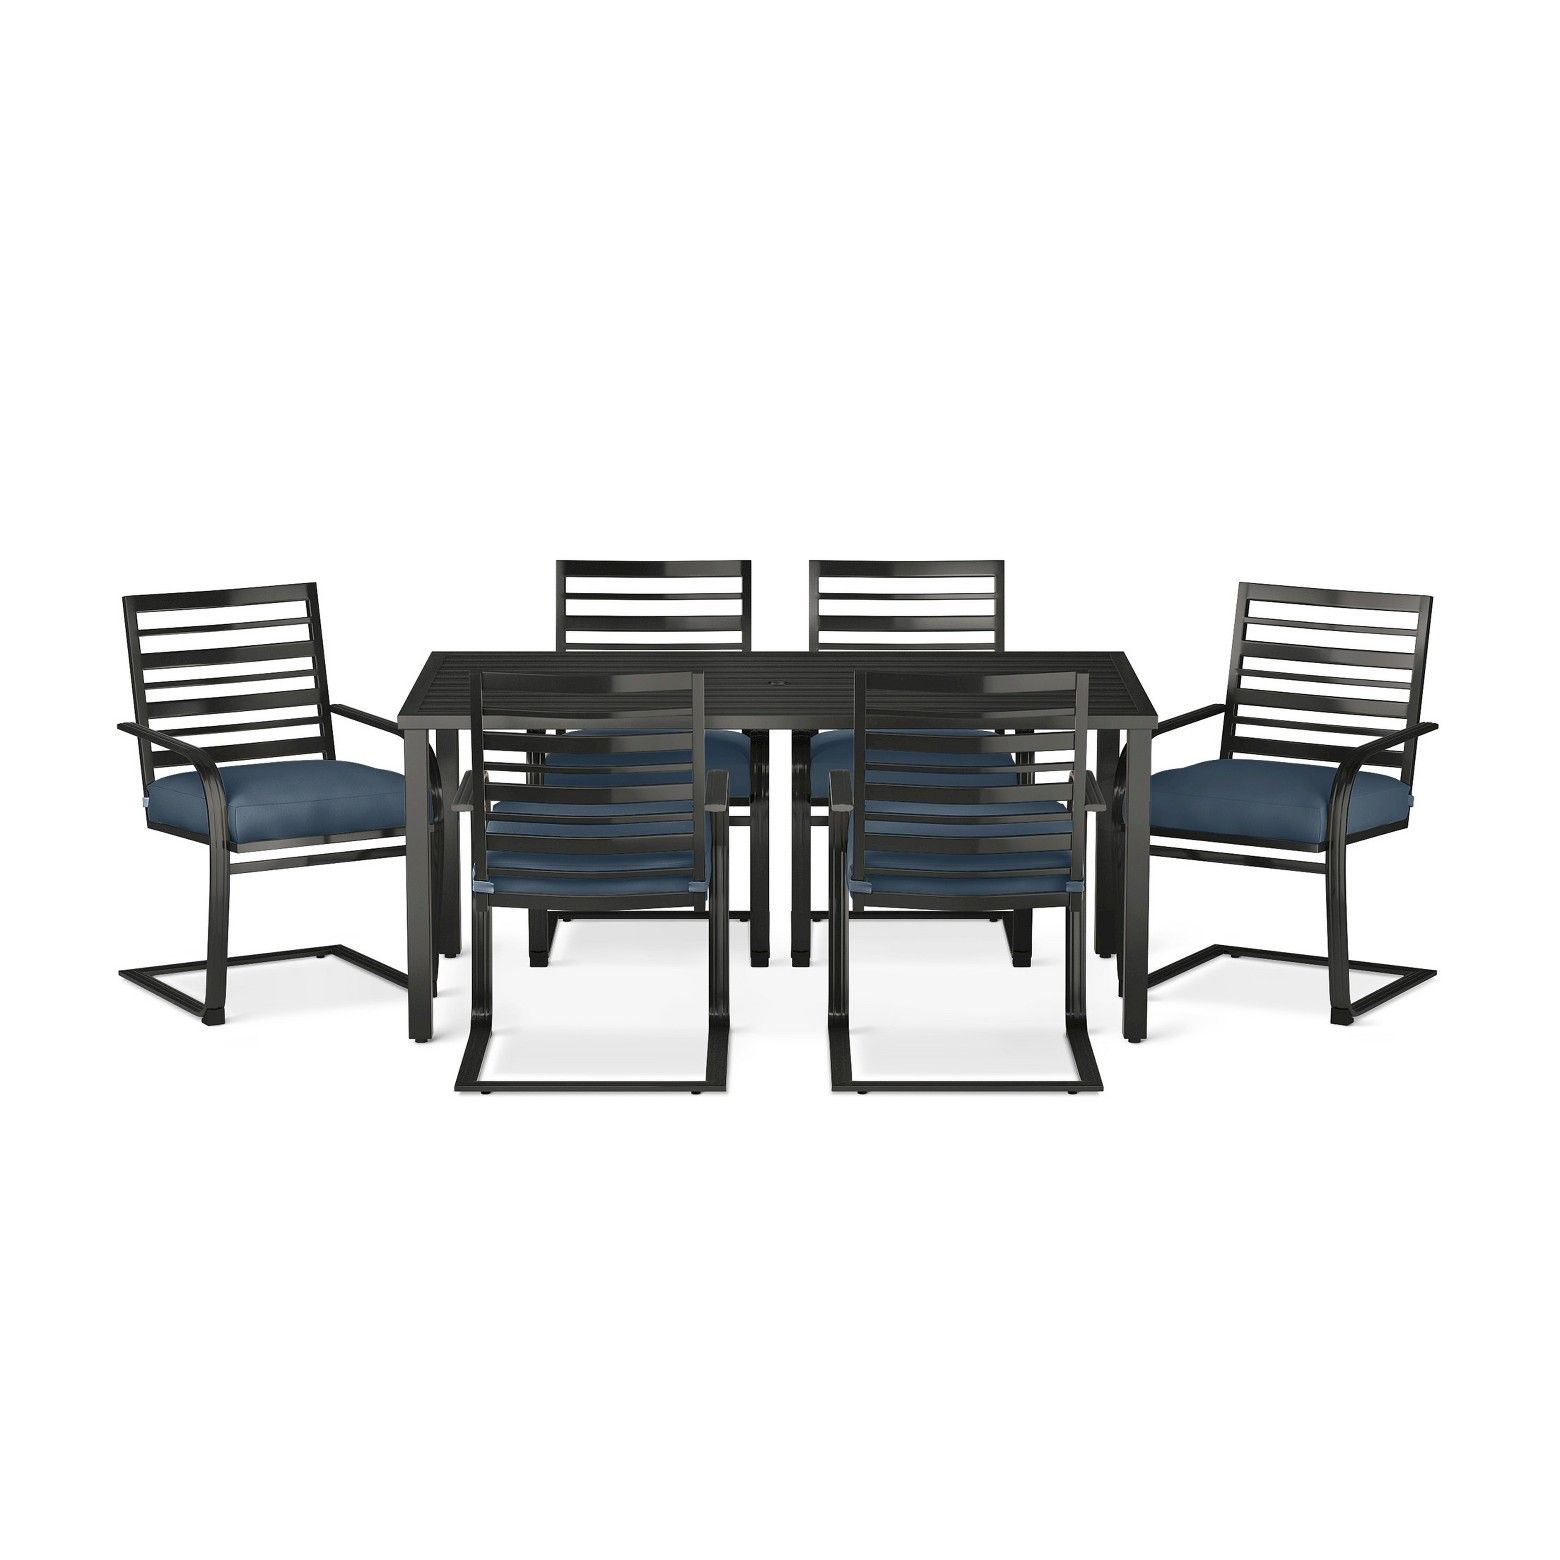 The Threshold Ft Walton 7pc Motion Dining Set provides comfort and ...